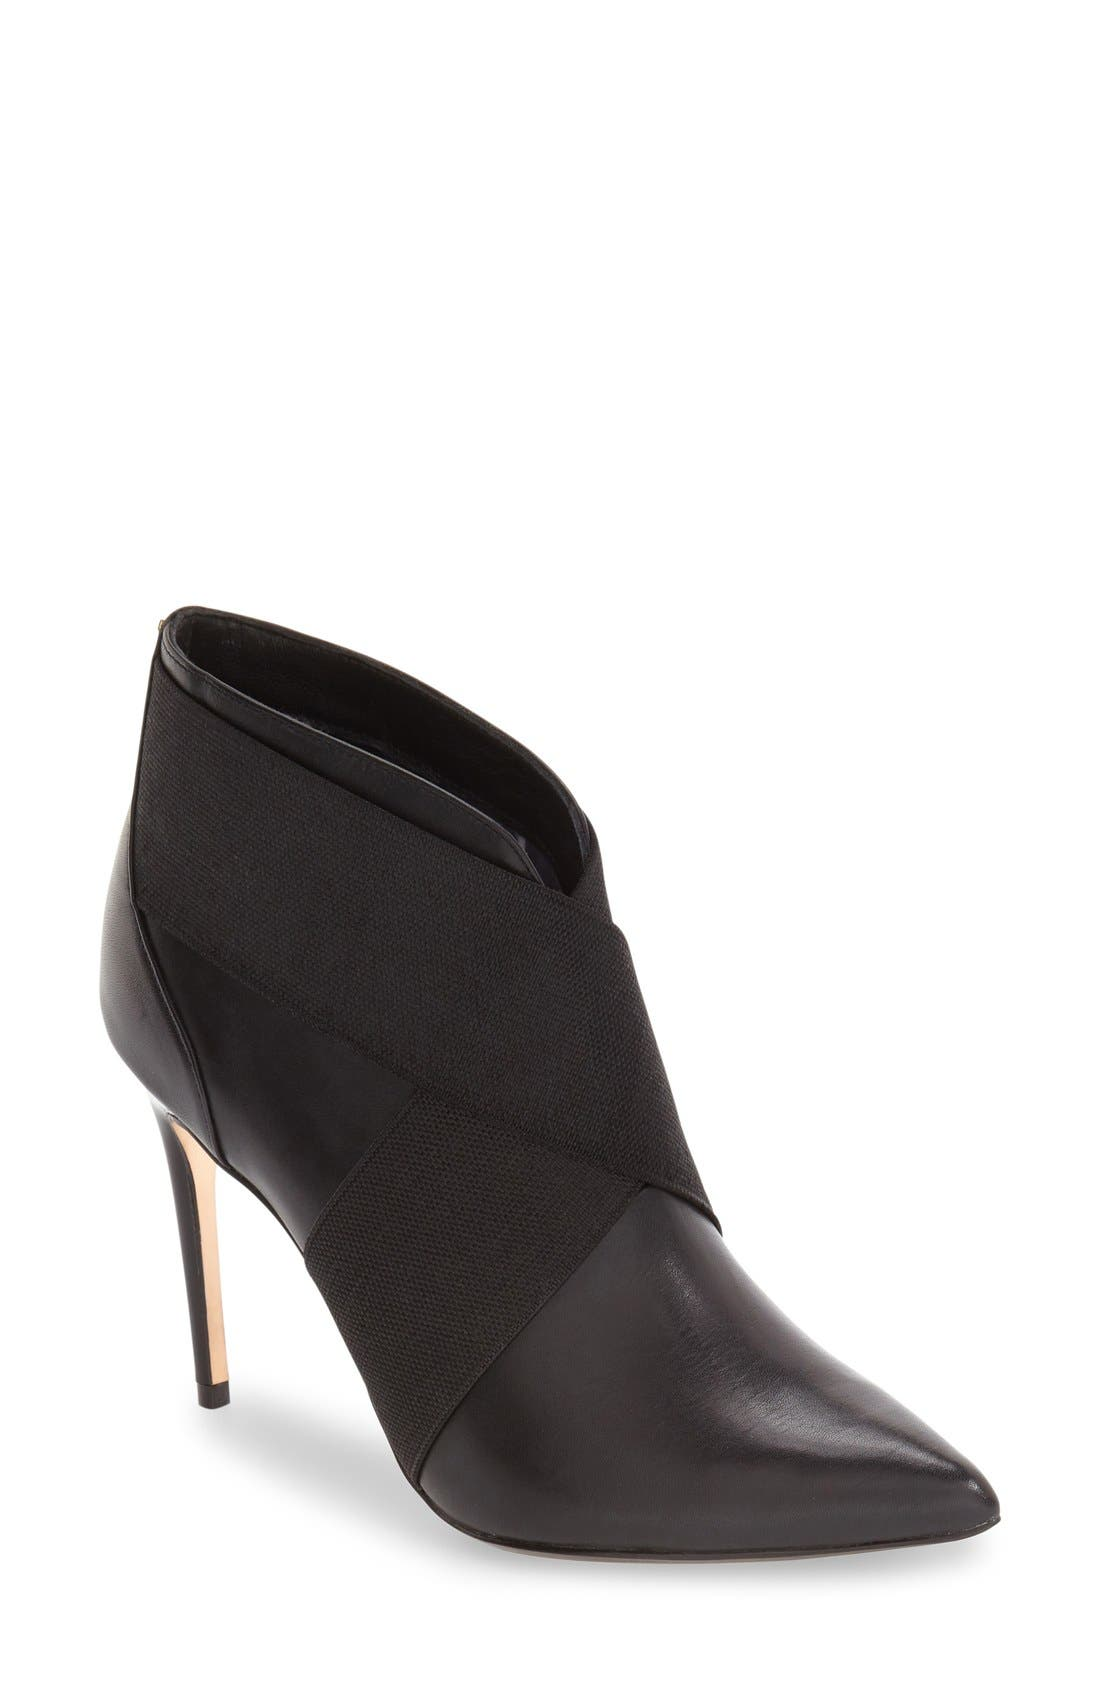 Alternate Image 1 Selected - Ted Baker London 'Lenaus' Pointy Toe Bootie (Women)